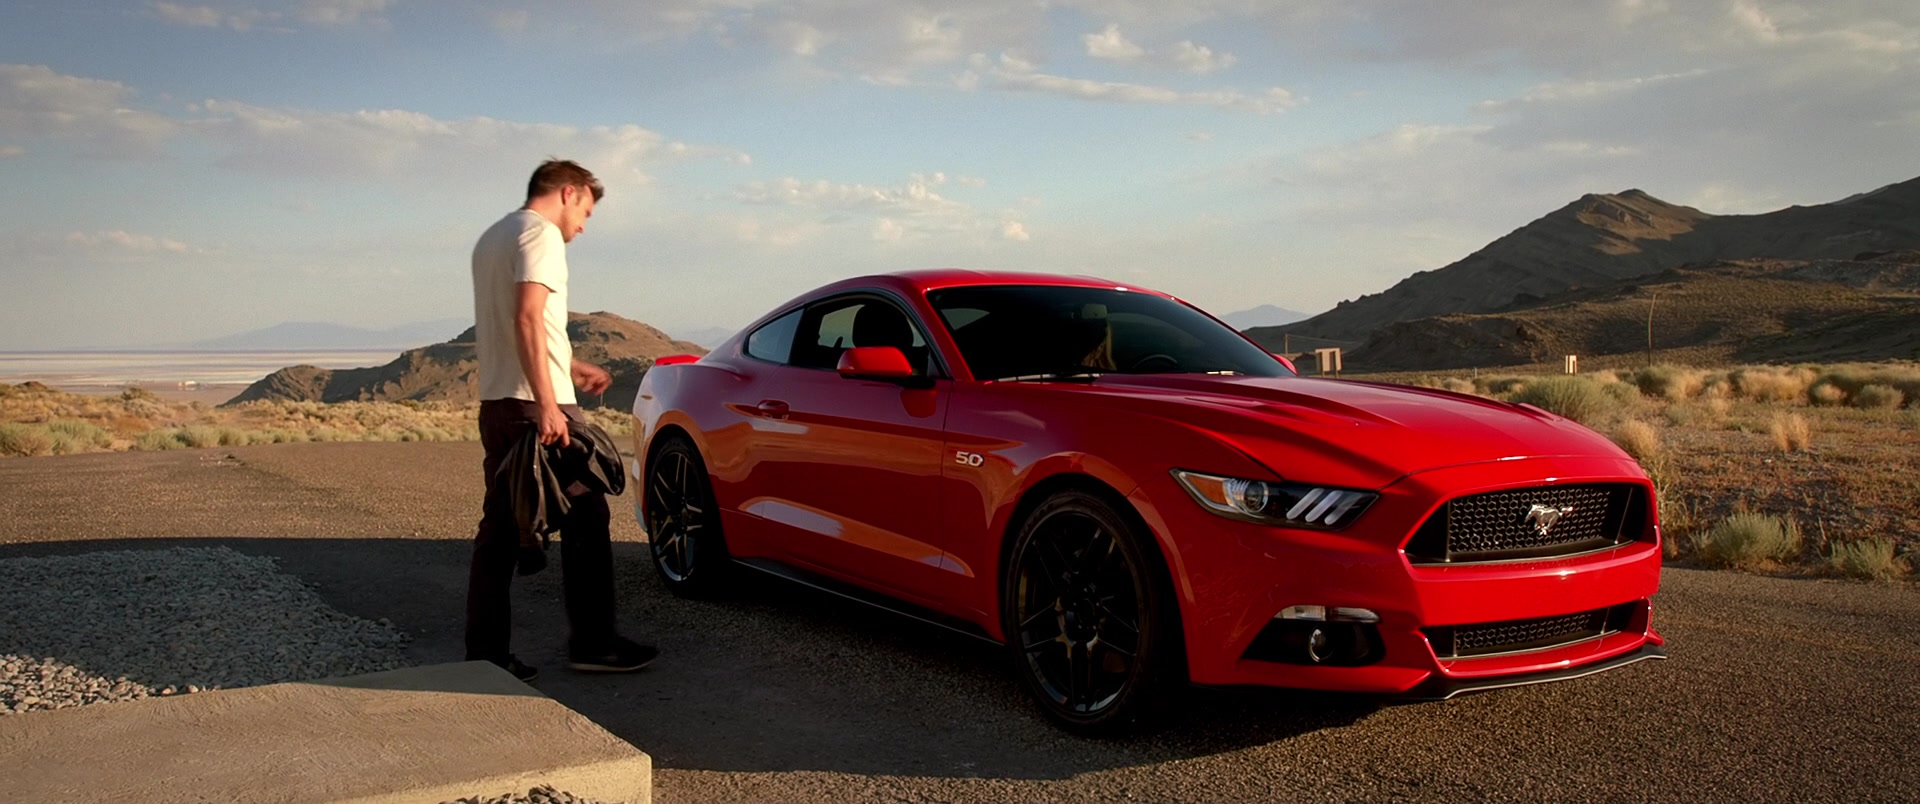 Ford Mustang Red Car Driven By Imogen Poots In Need For Speed 2014 Movie